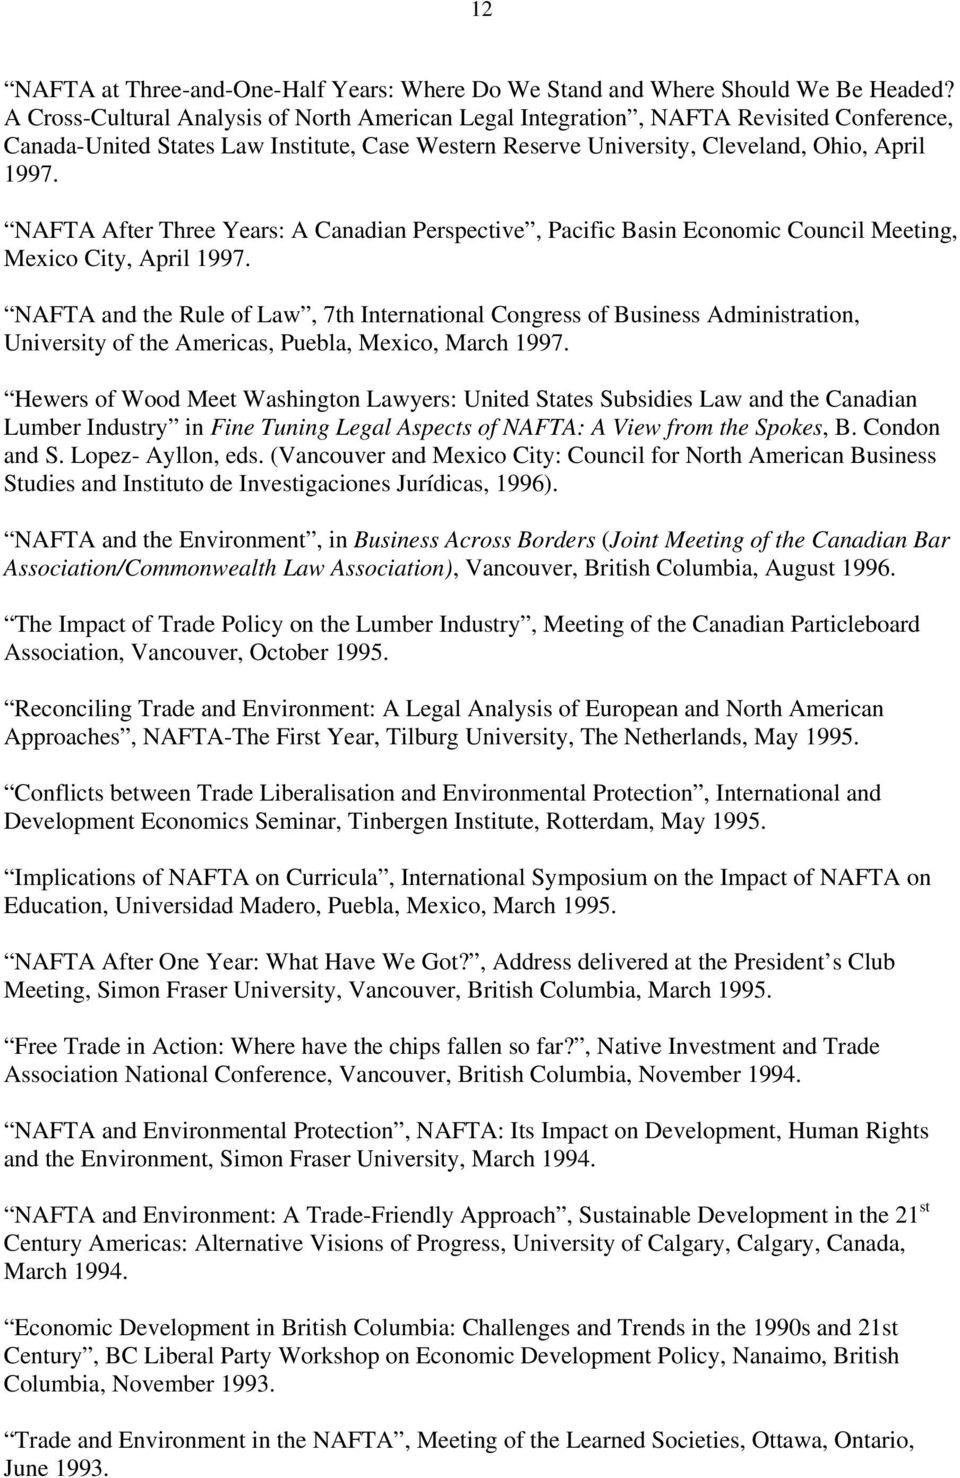 NAFTA After Three Years: A Canadian Perspective, Pacific Basin Economic Council Meeting, Mexico City, April 1997.